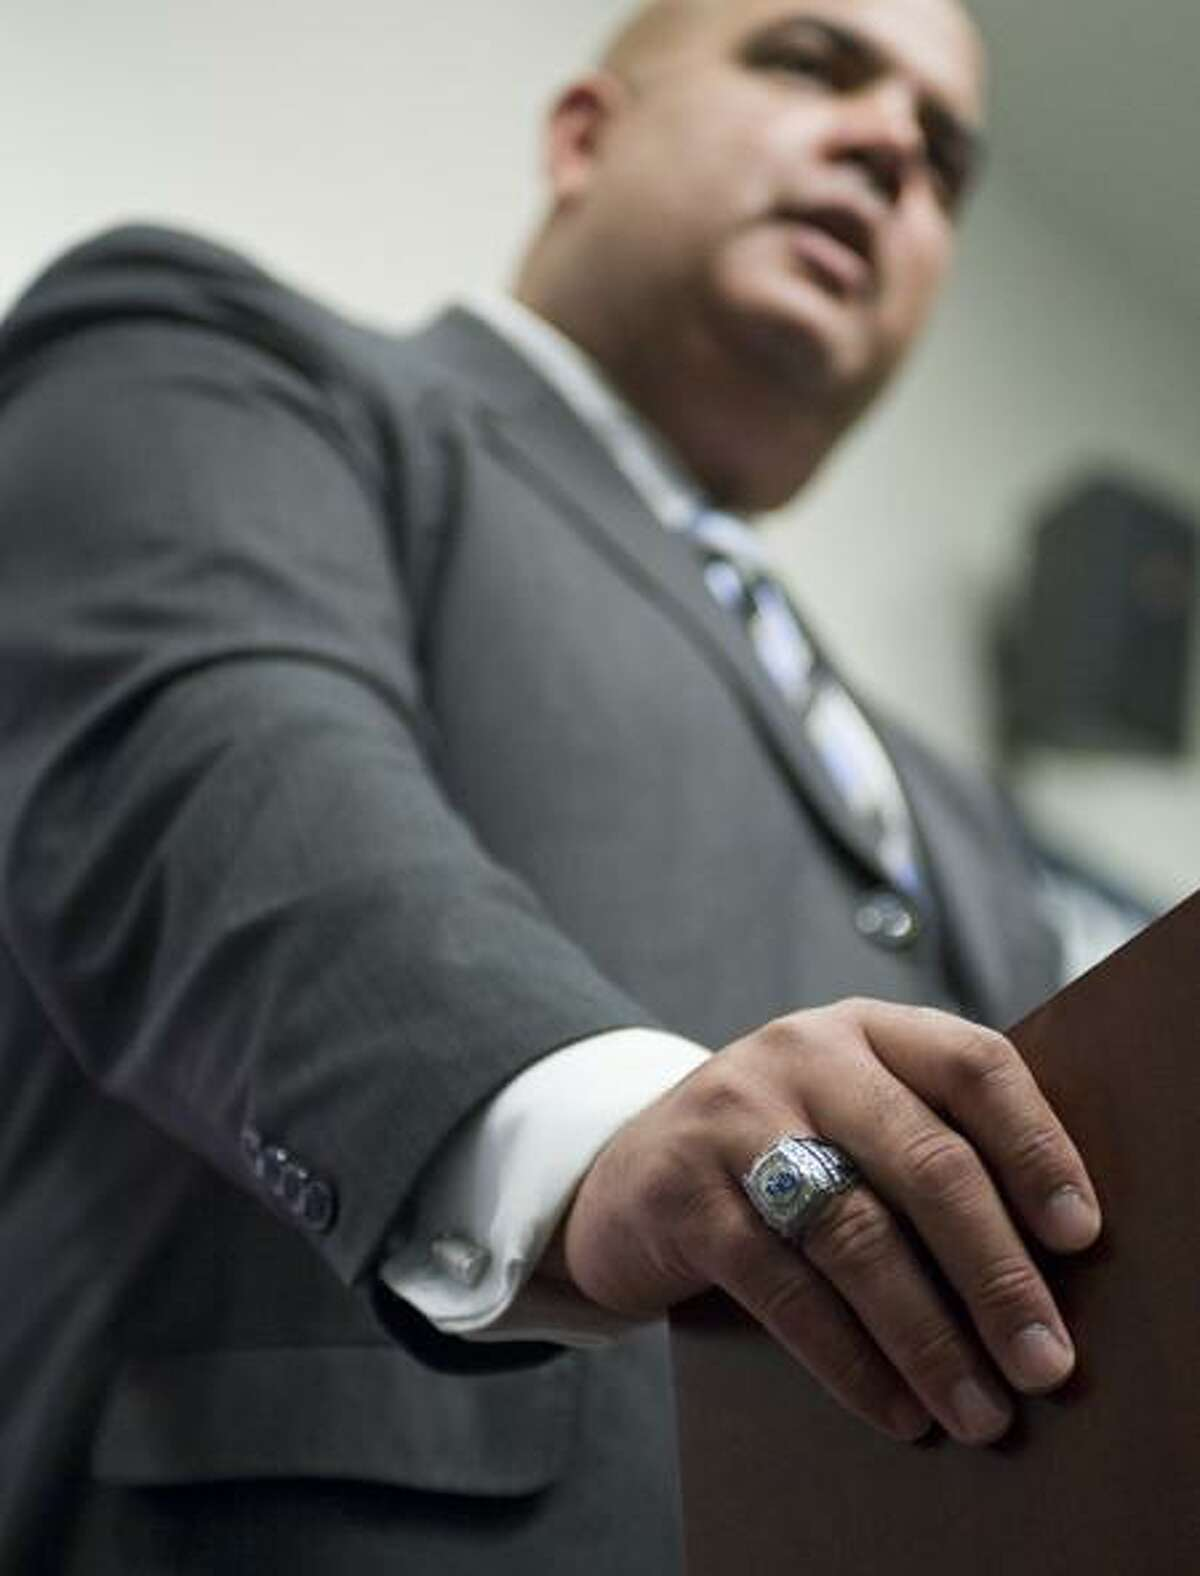 Former University at Buffalo Athletic Director Warde Manuel wears a championship ring from his former school as he is introduced as the new athletic director for the University of Connecticut at a news conference in Storrs, Conn., Monday, Feb. 13, 2012. (AP Photo/Jessica Hill)